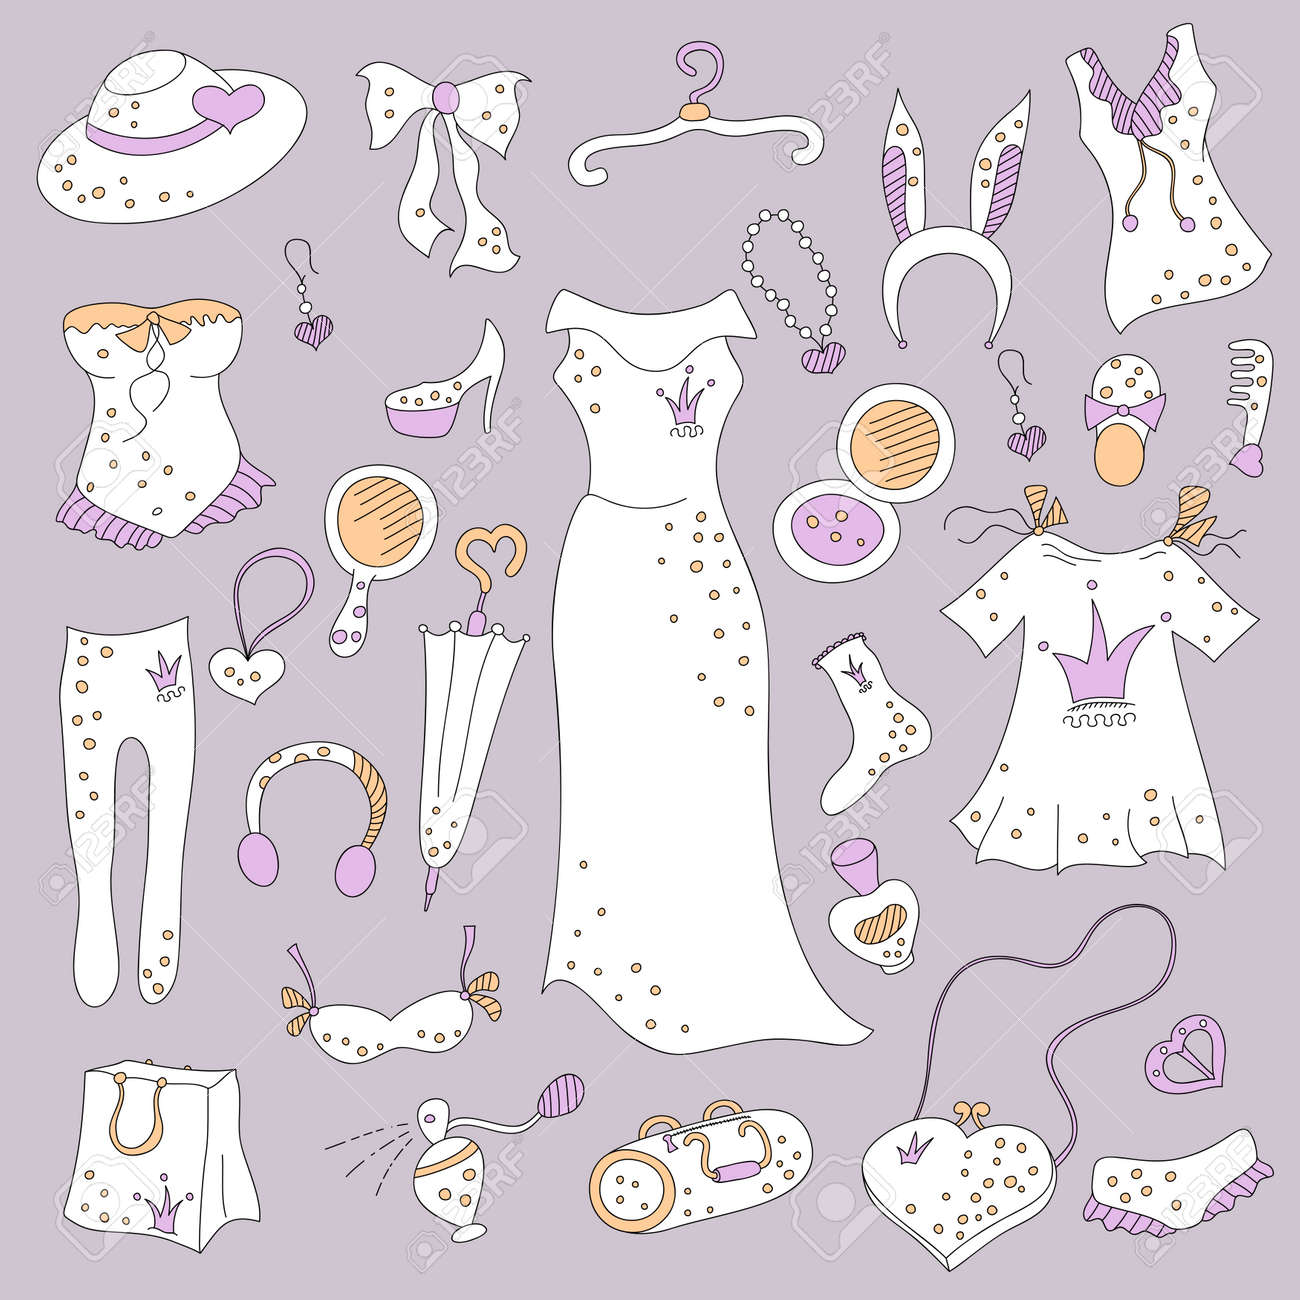 32eb2fe13d7a5 Stylish hand drawn composition of women related fashion items, shopping  madness, vector set Stock